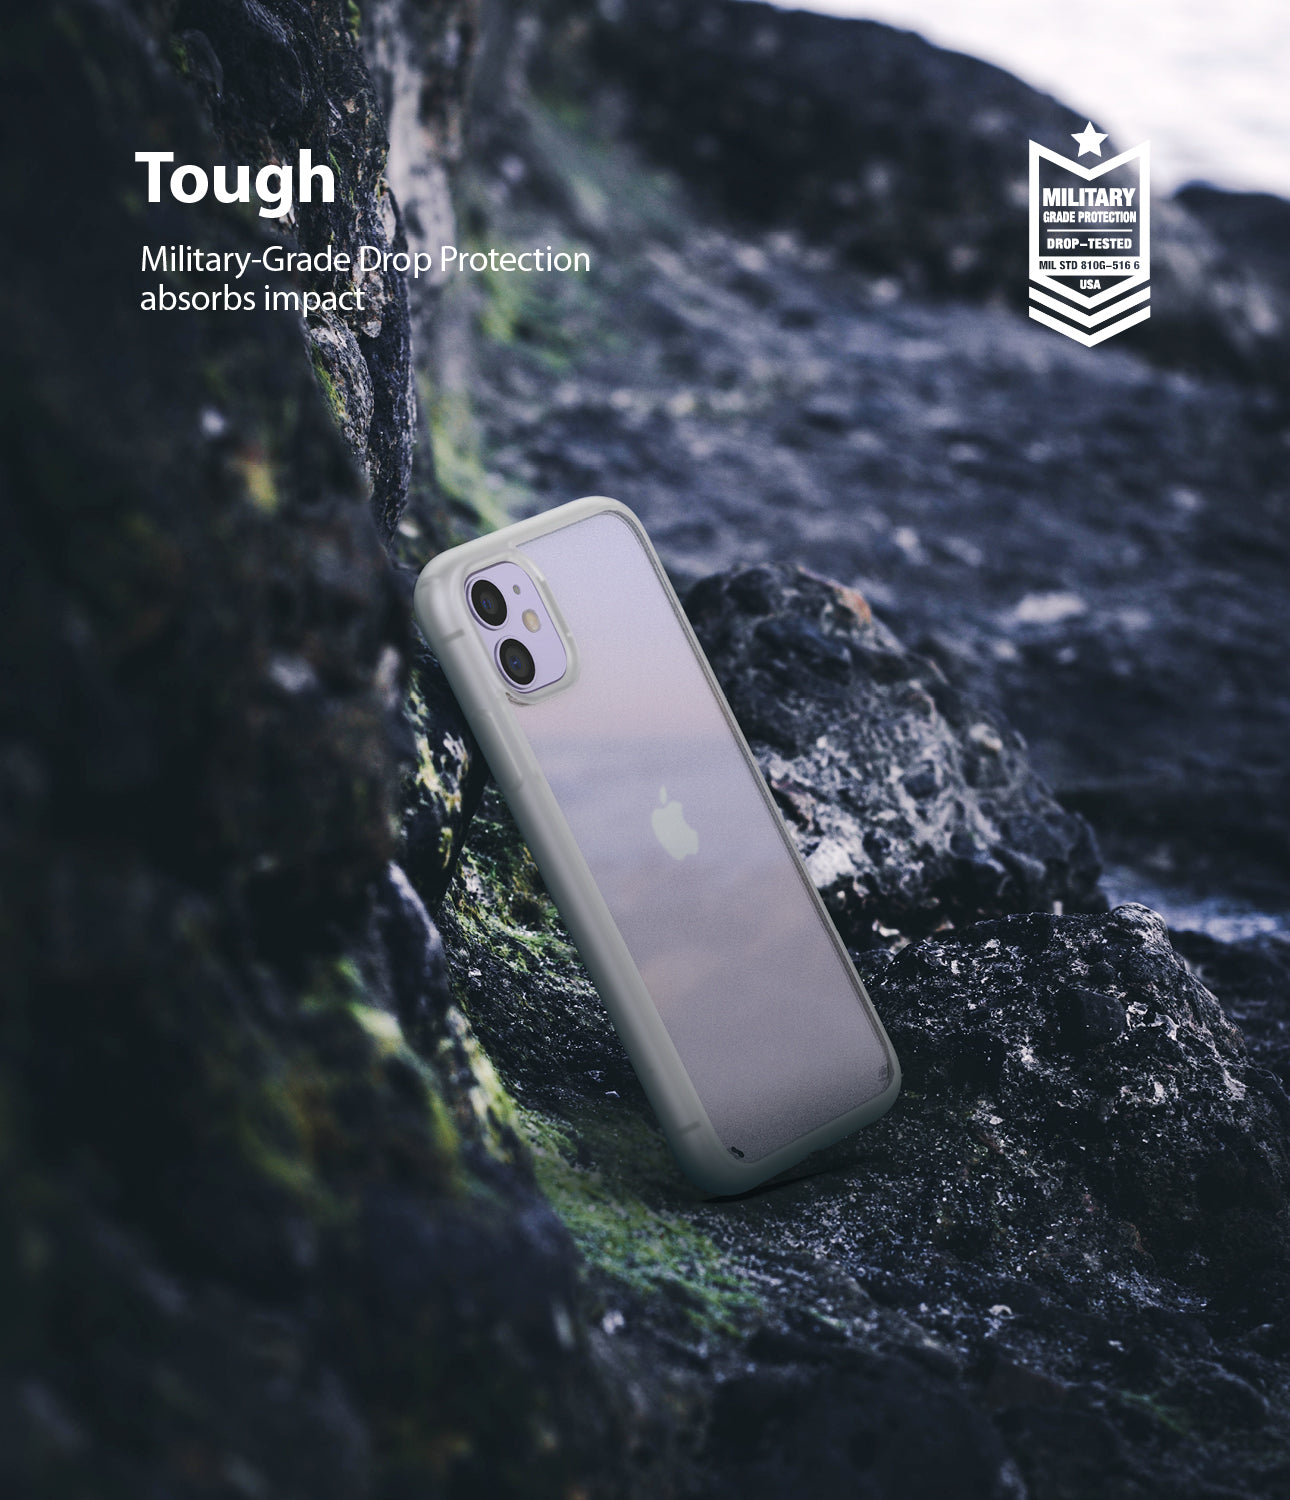 Ringke Fusion Matte for iPhone 11 Anti-Fingerprint Frosted PC Case Protection Tough